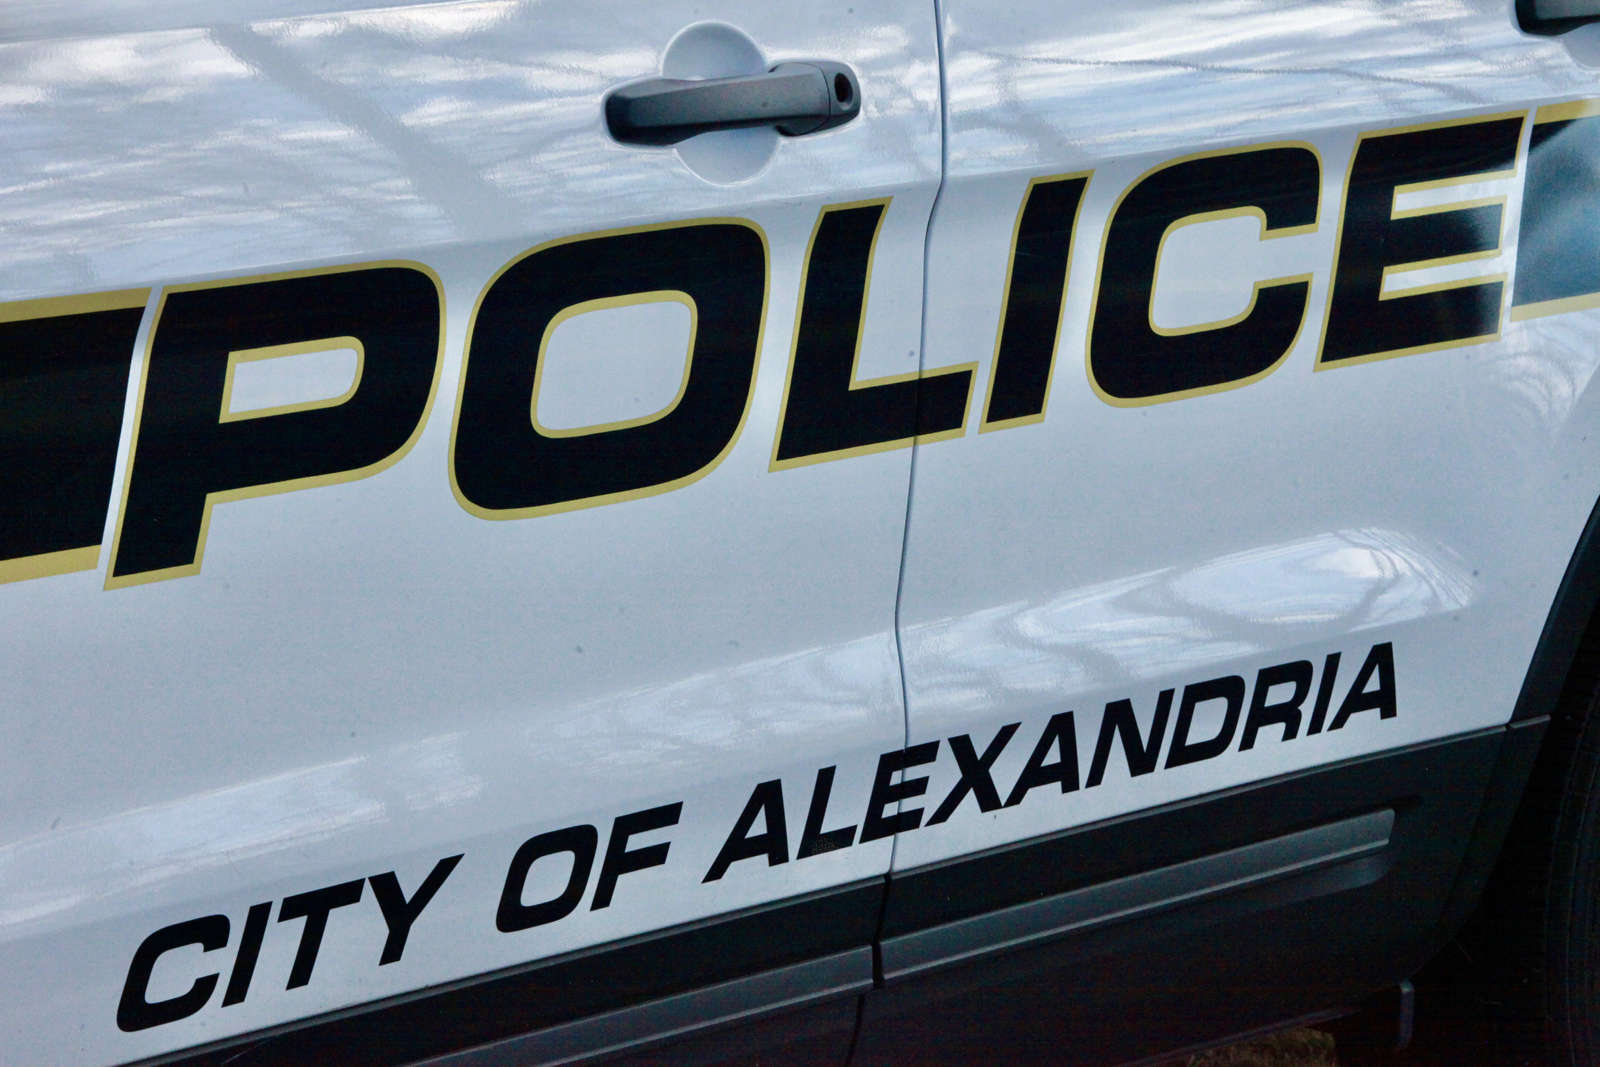 Alexandria City Council to consider reallocation of School Resource Officer funding